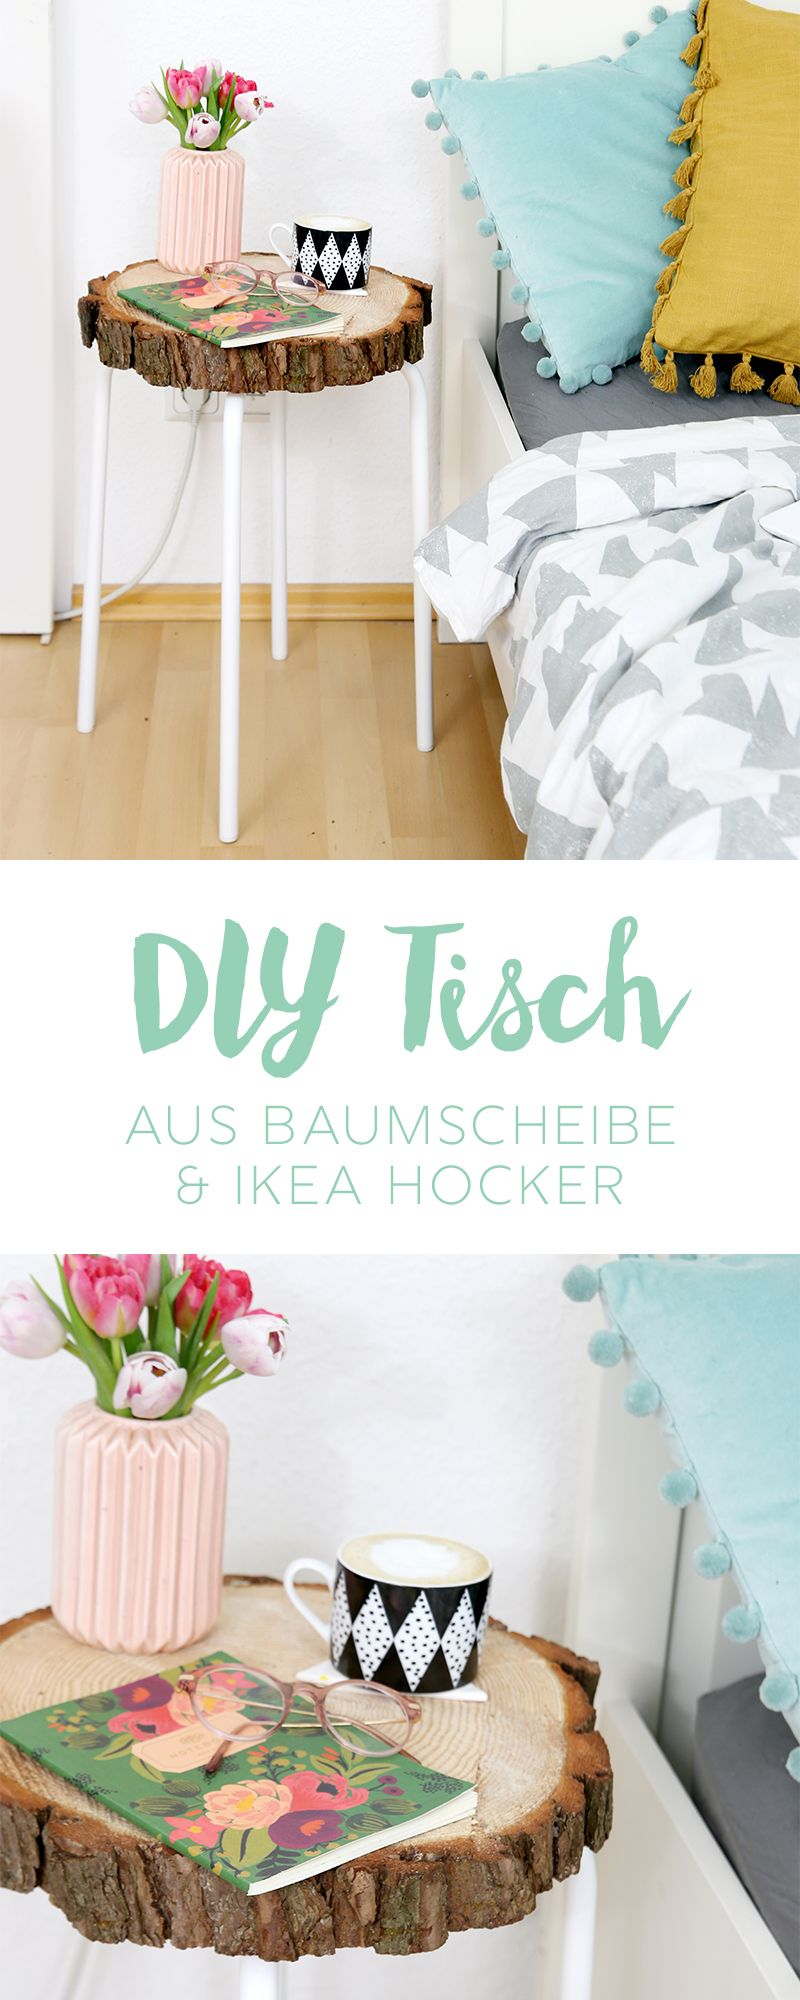 diy beistelltisch aus baumscheibe und ikea hocker ikea. Black Bedroom Furniture Sets. Home Design Ideas